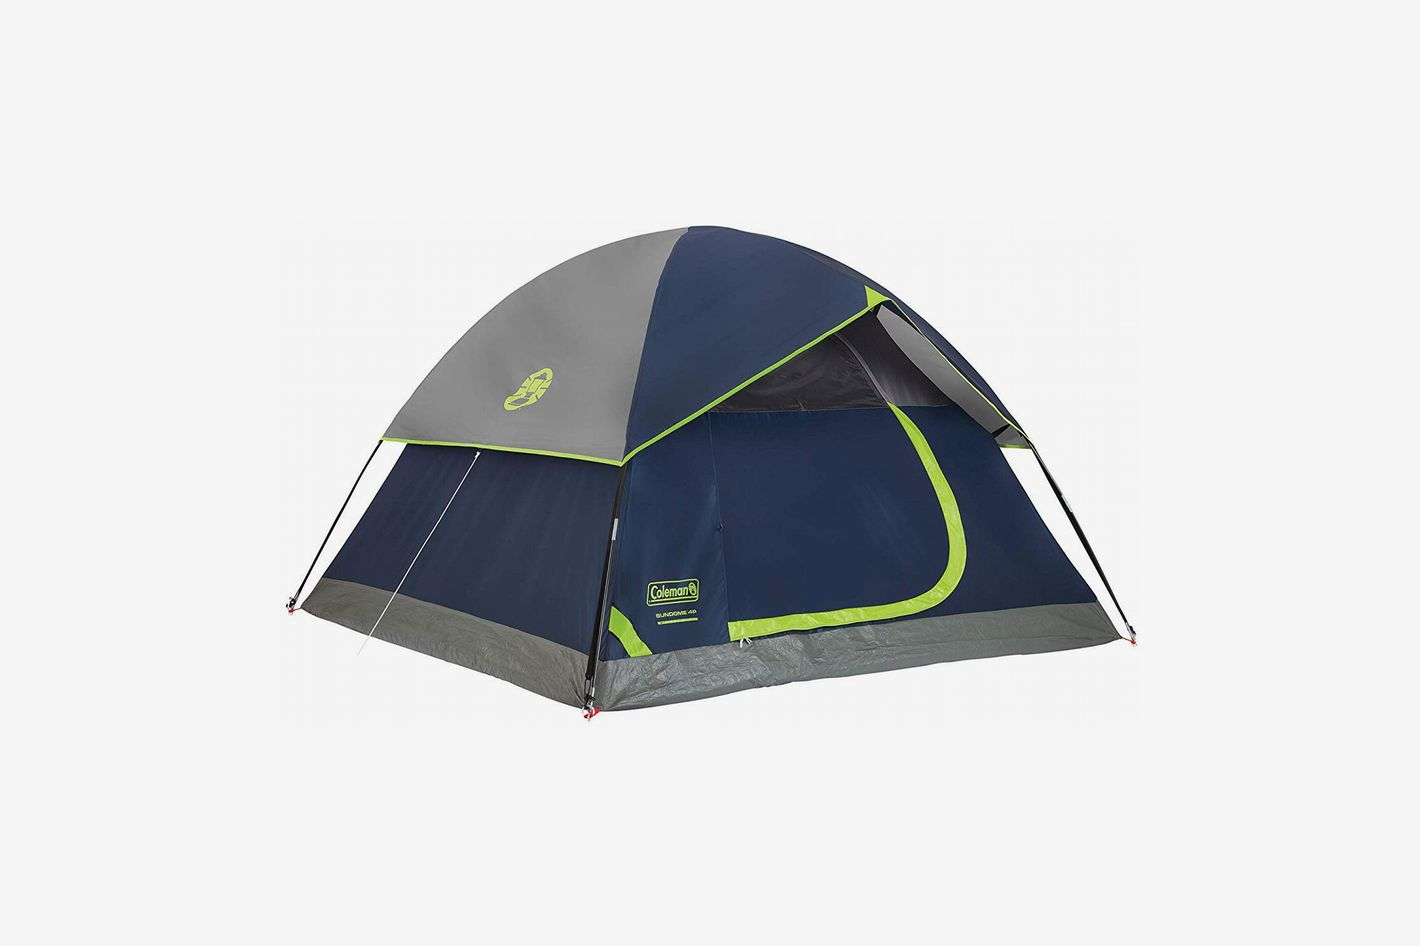 f5b8caa6e8 13 Best Outdoor Tents for Camping and Backpacking — 2019